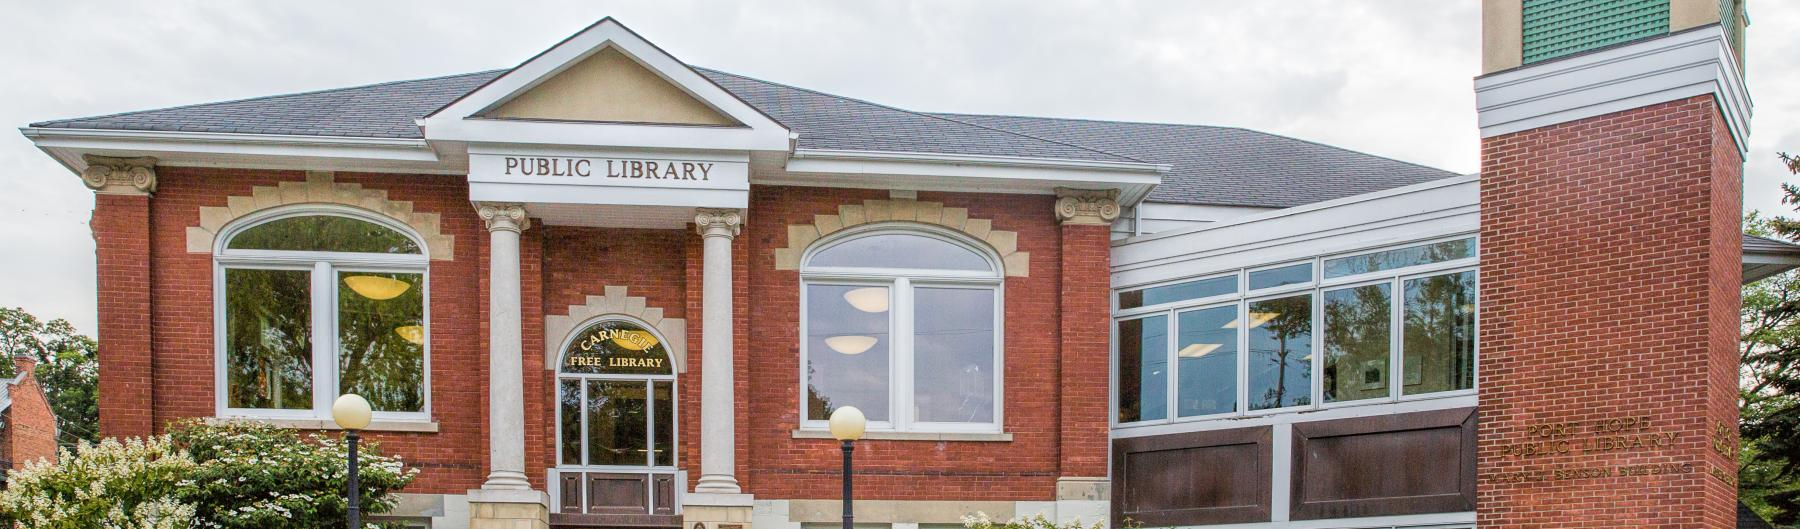 Port Hope Public Library circa 2017